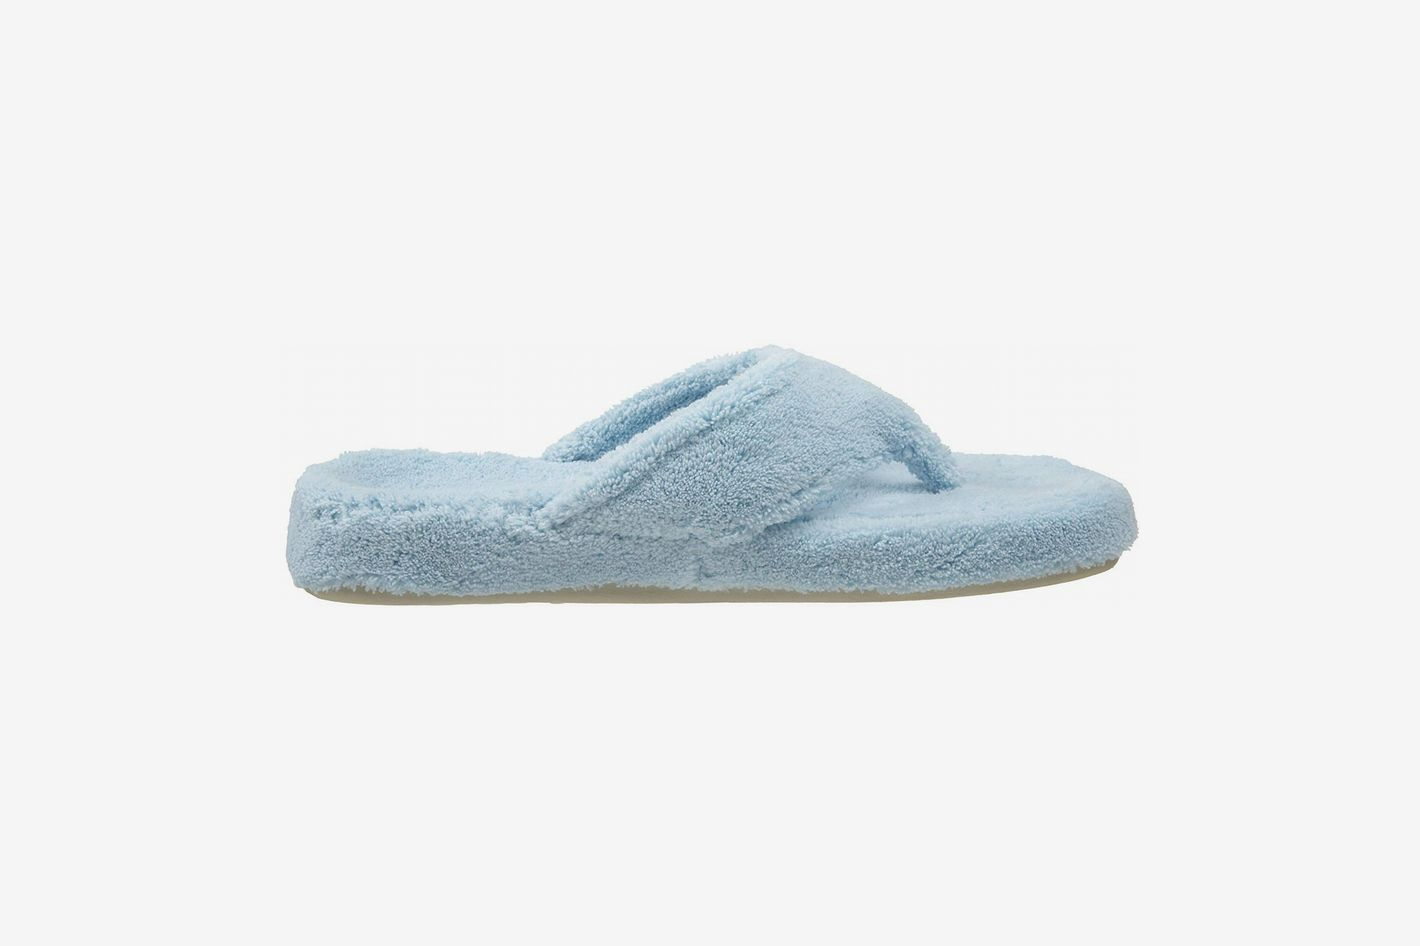 ec0f70fd150 Acorn Women s Spa Thong Slipper